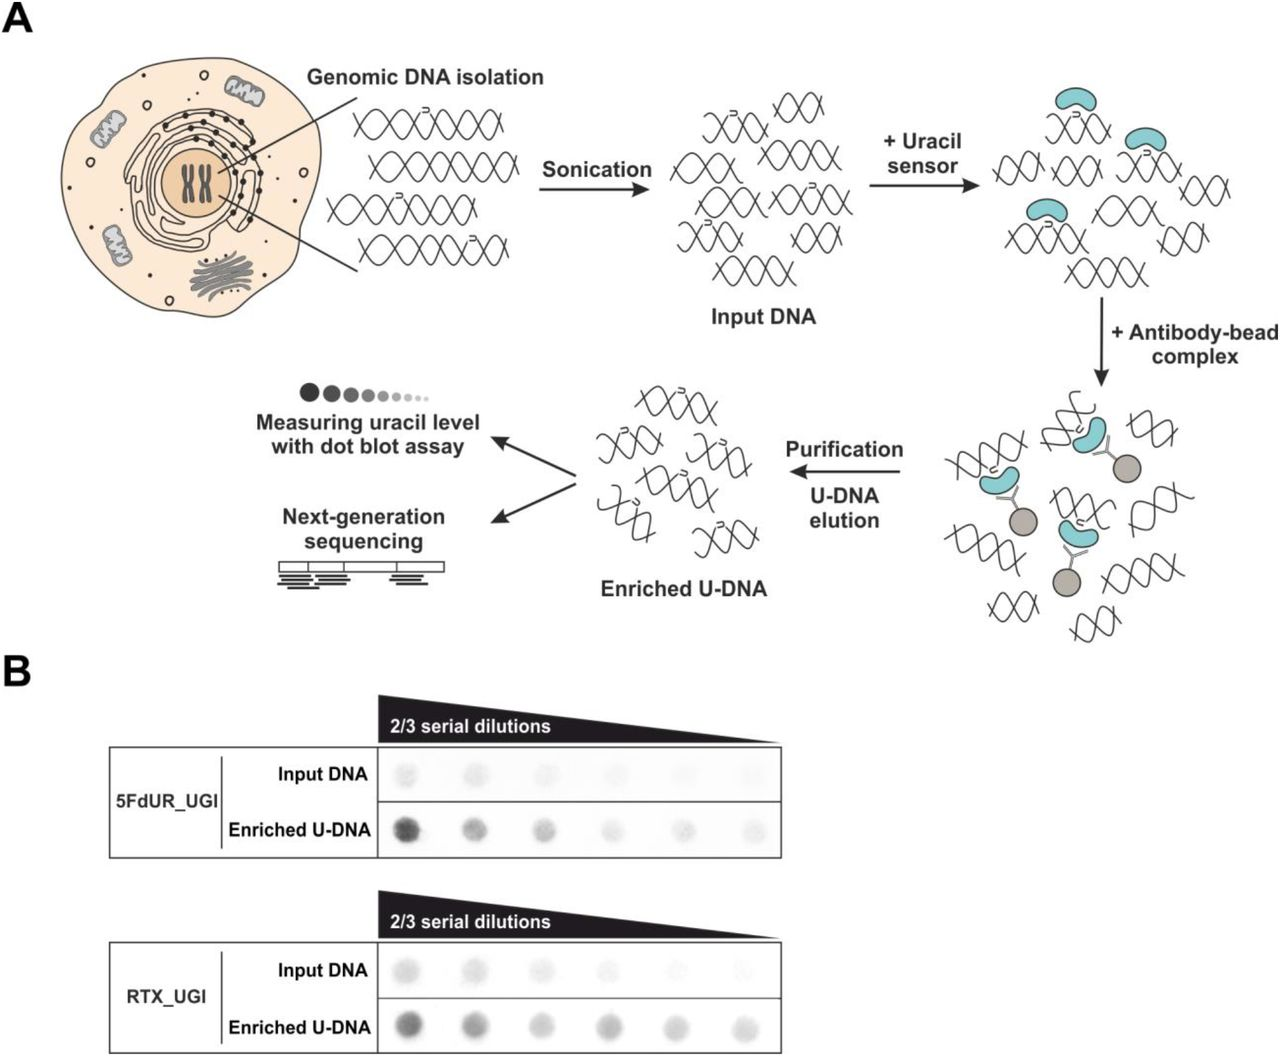 U-DNA-Seq provides genome-wide mapping of uracil-DNA distribution. (A) Schematic image of the novel U-DNA immunoprecipitation and sequencing method (U-DNA-Seq). After sonication, enrichment of the fragmented U-DNA was carried out by the 1xFLAG-ΔUNG sensor construct followed by pull-down with anti-FLAG agarose beads. U-DNA enrichment compared to input DNA was confirmed by dot blot assay before samples were subjected to NGS. (B) Immunoprecipitation led to elevated uracil levels in enriched U-DNA samples compared to input DNA in case of both 5FdUR (5FdUR_UGI) and RTX (RTX_UGI) treated samples. In case of the given treatment, the same amount of DNA was loaded from input and enriched U-DNA samples providing correct visual comparison of the dots. Two-third serial dilutions were applied.